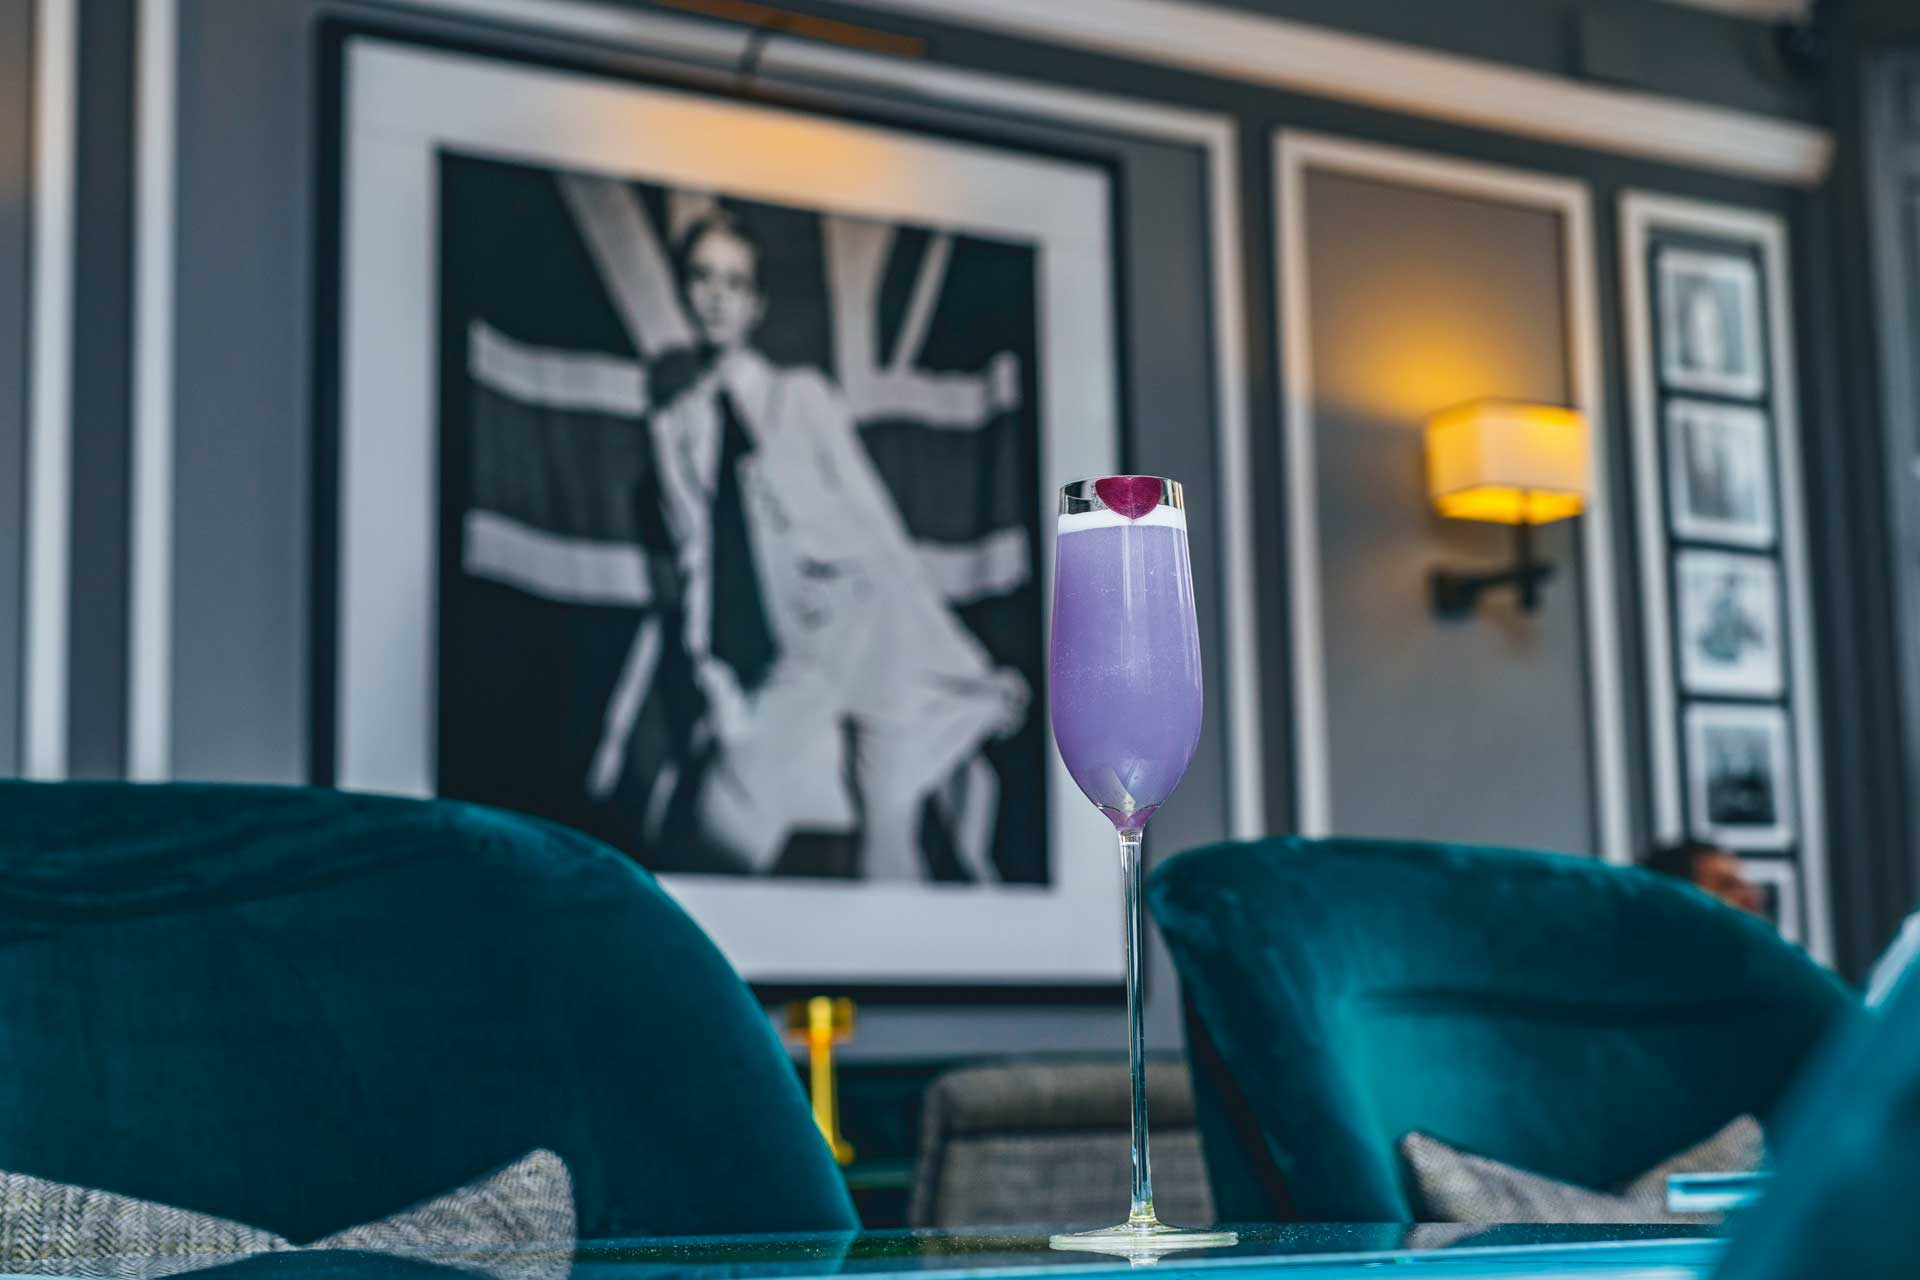 The Twiggy cocktail in Mayfair's Donovan Bar